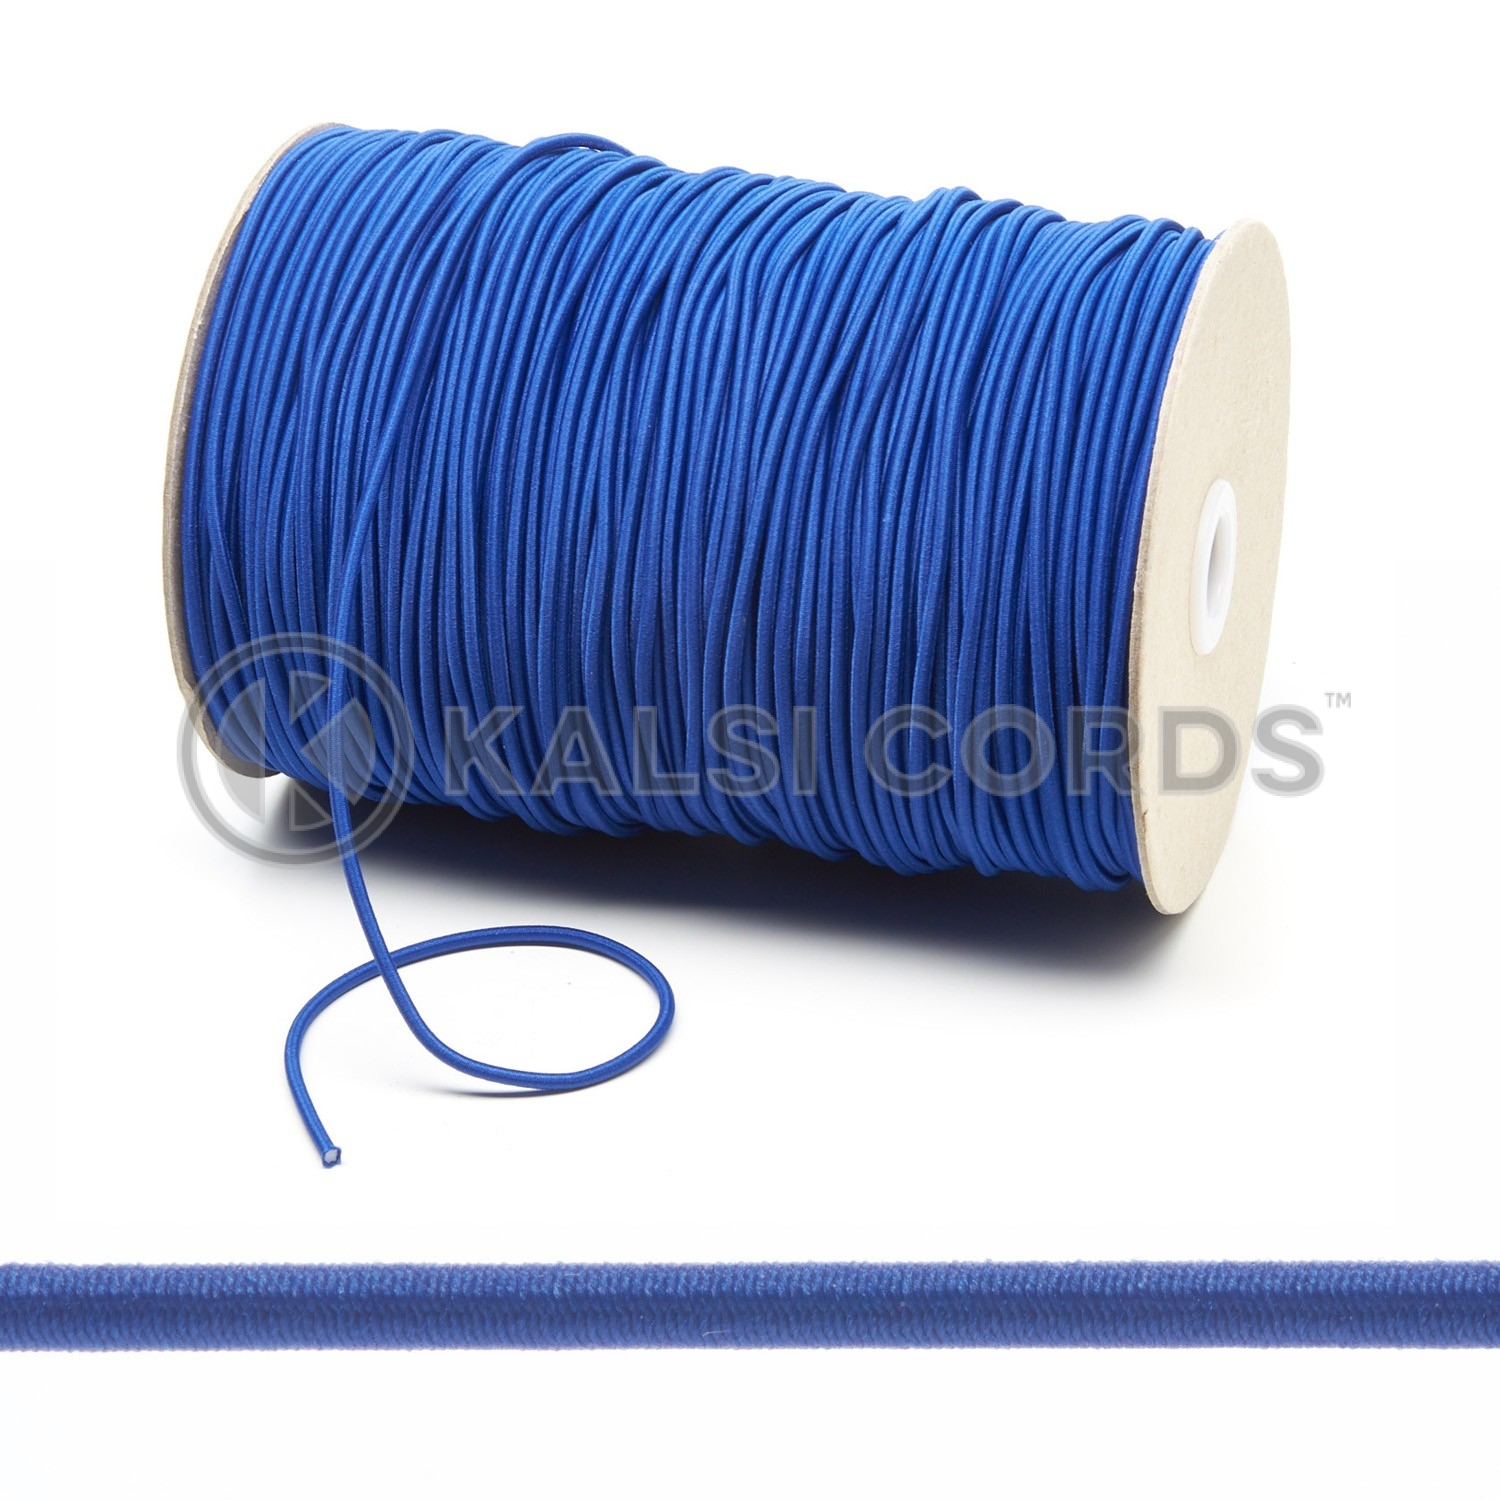 3mm Royal Blue Thin Fine Round Elastic Cord Kalsi Cords